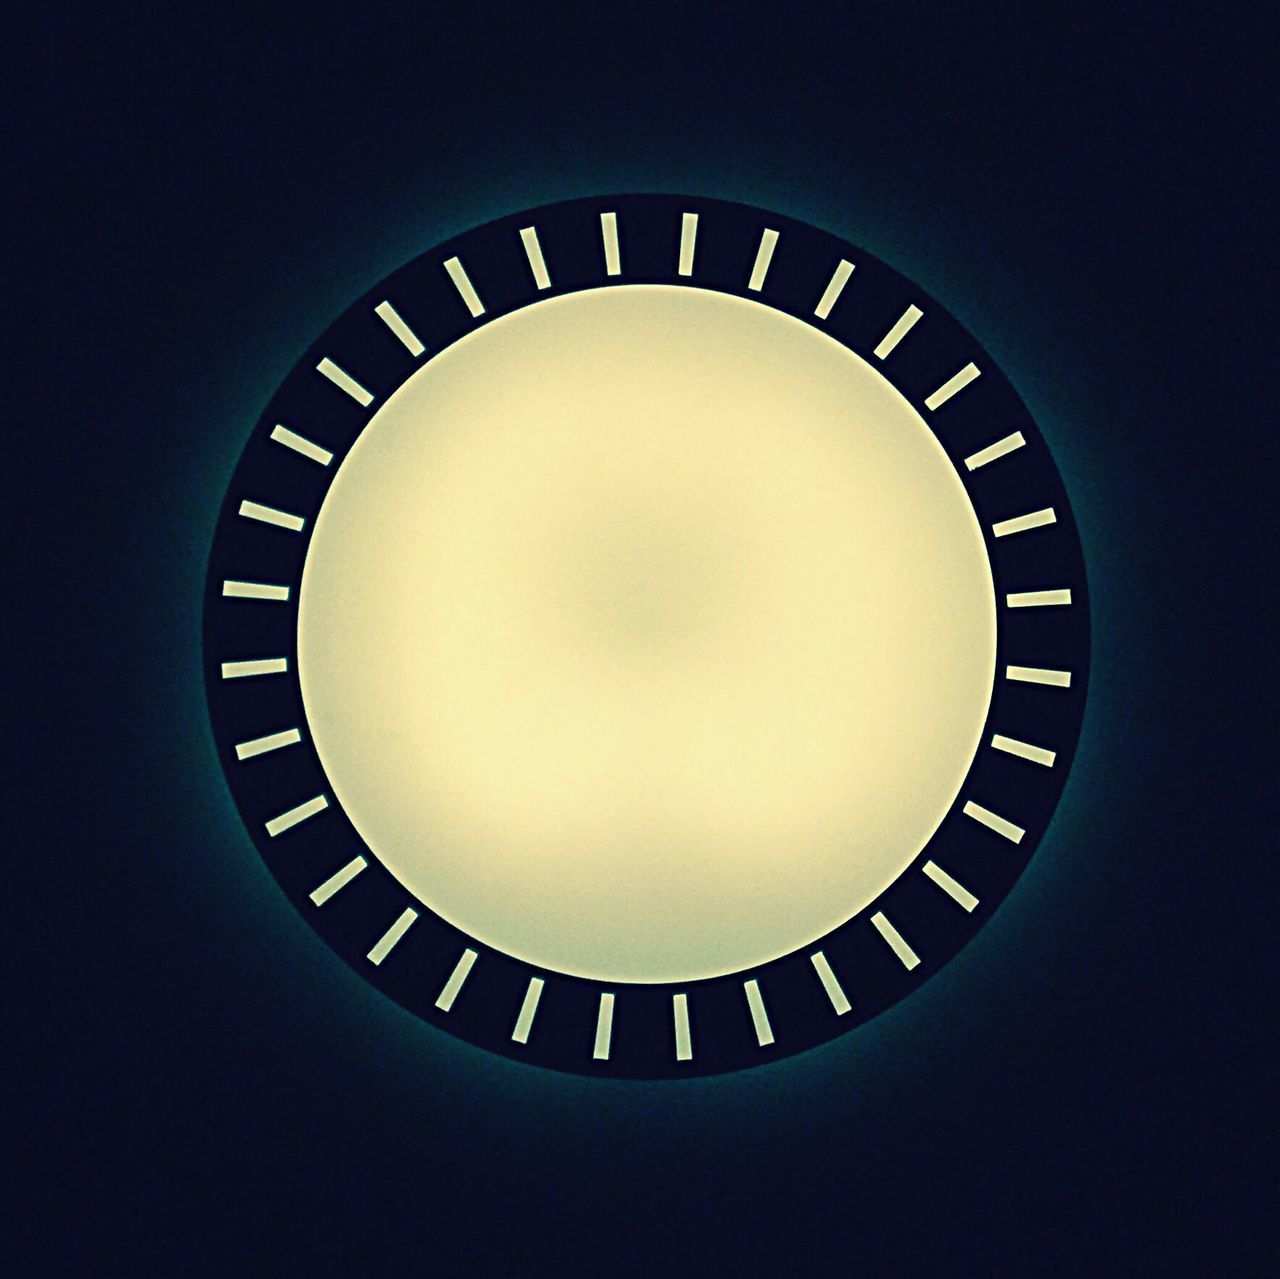 Ceiling Lights Light Bulbs Shape Looking Up Round Circle Light A Light Ceiling Ceiling Light  Indoors  Shapes And Lines